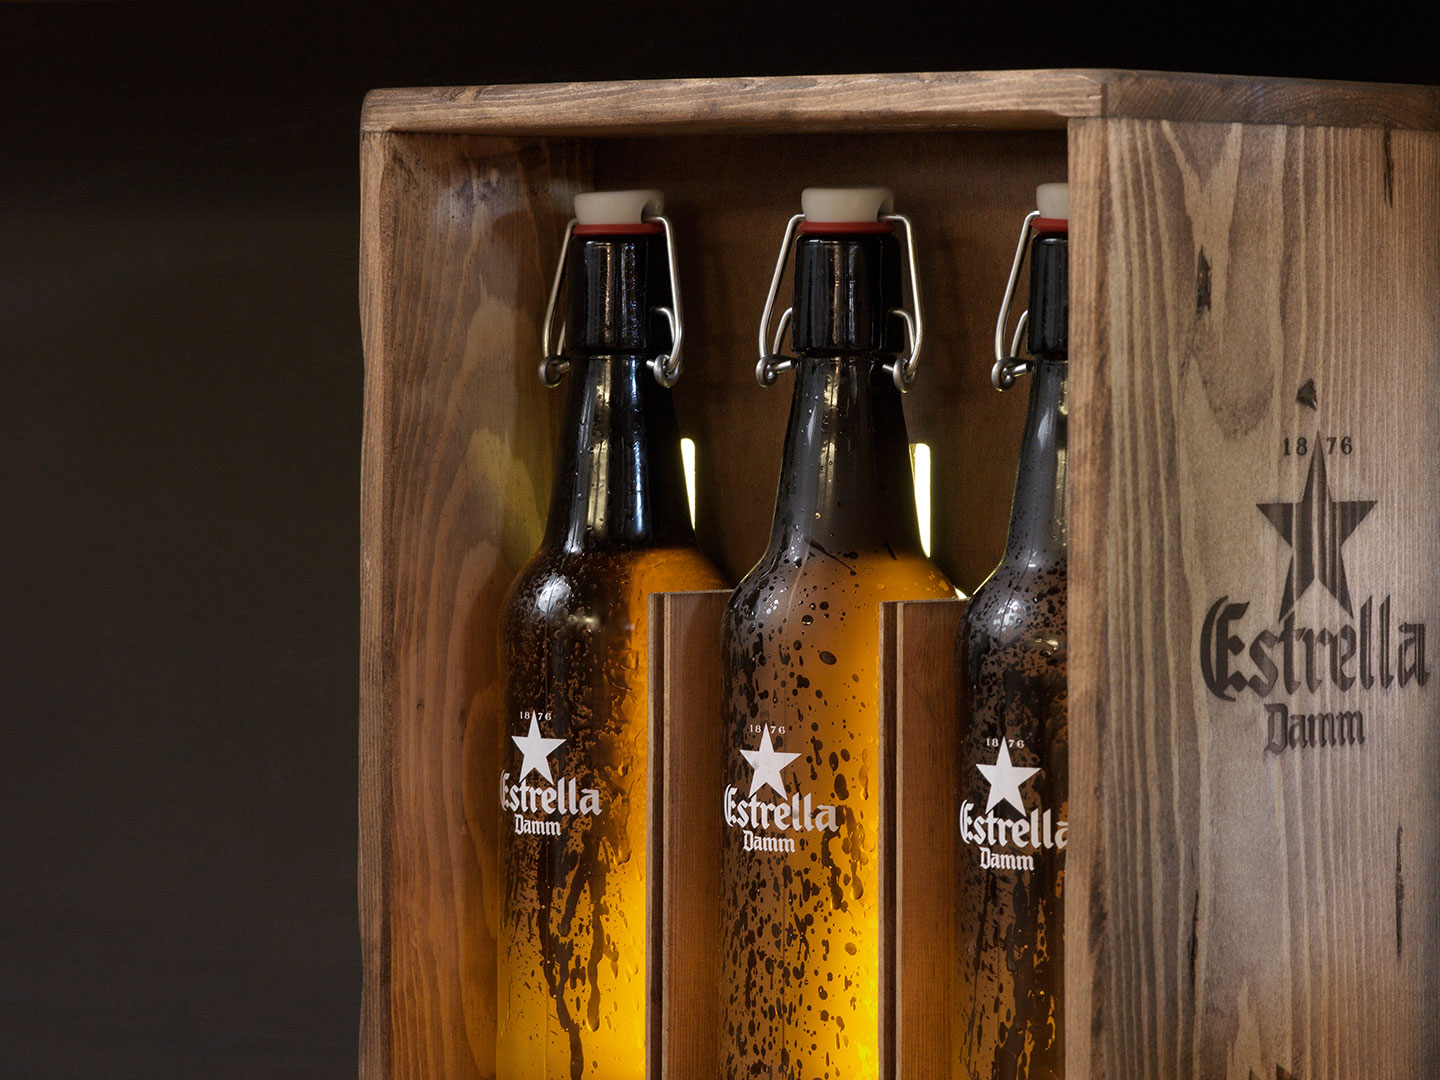 Estrella Damm lighting detail